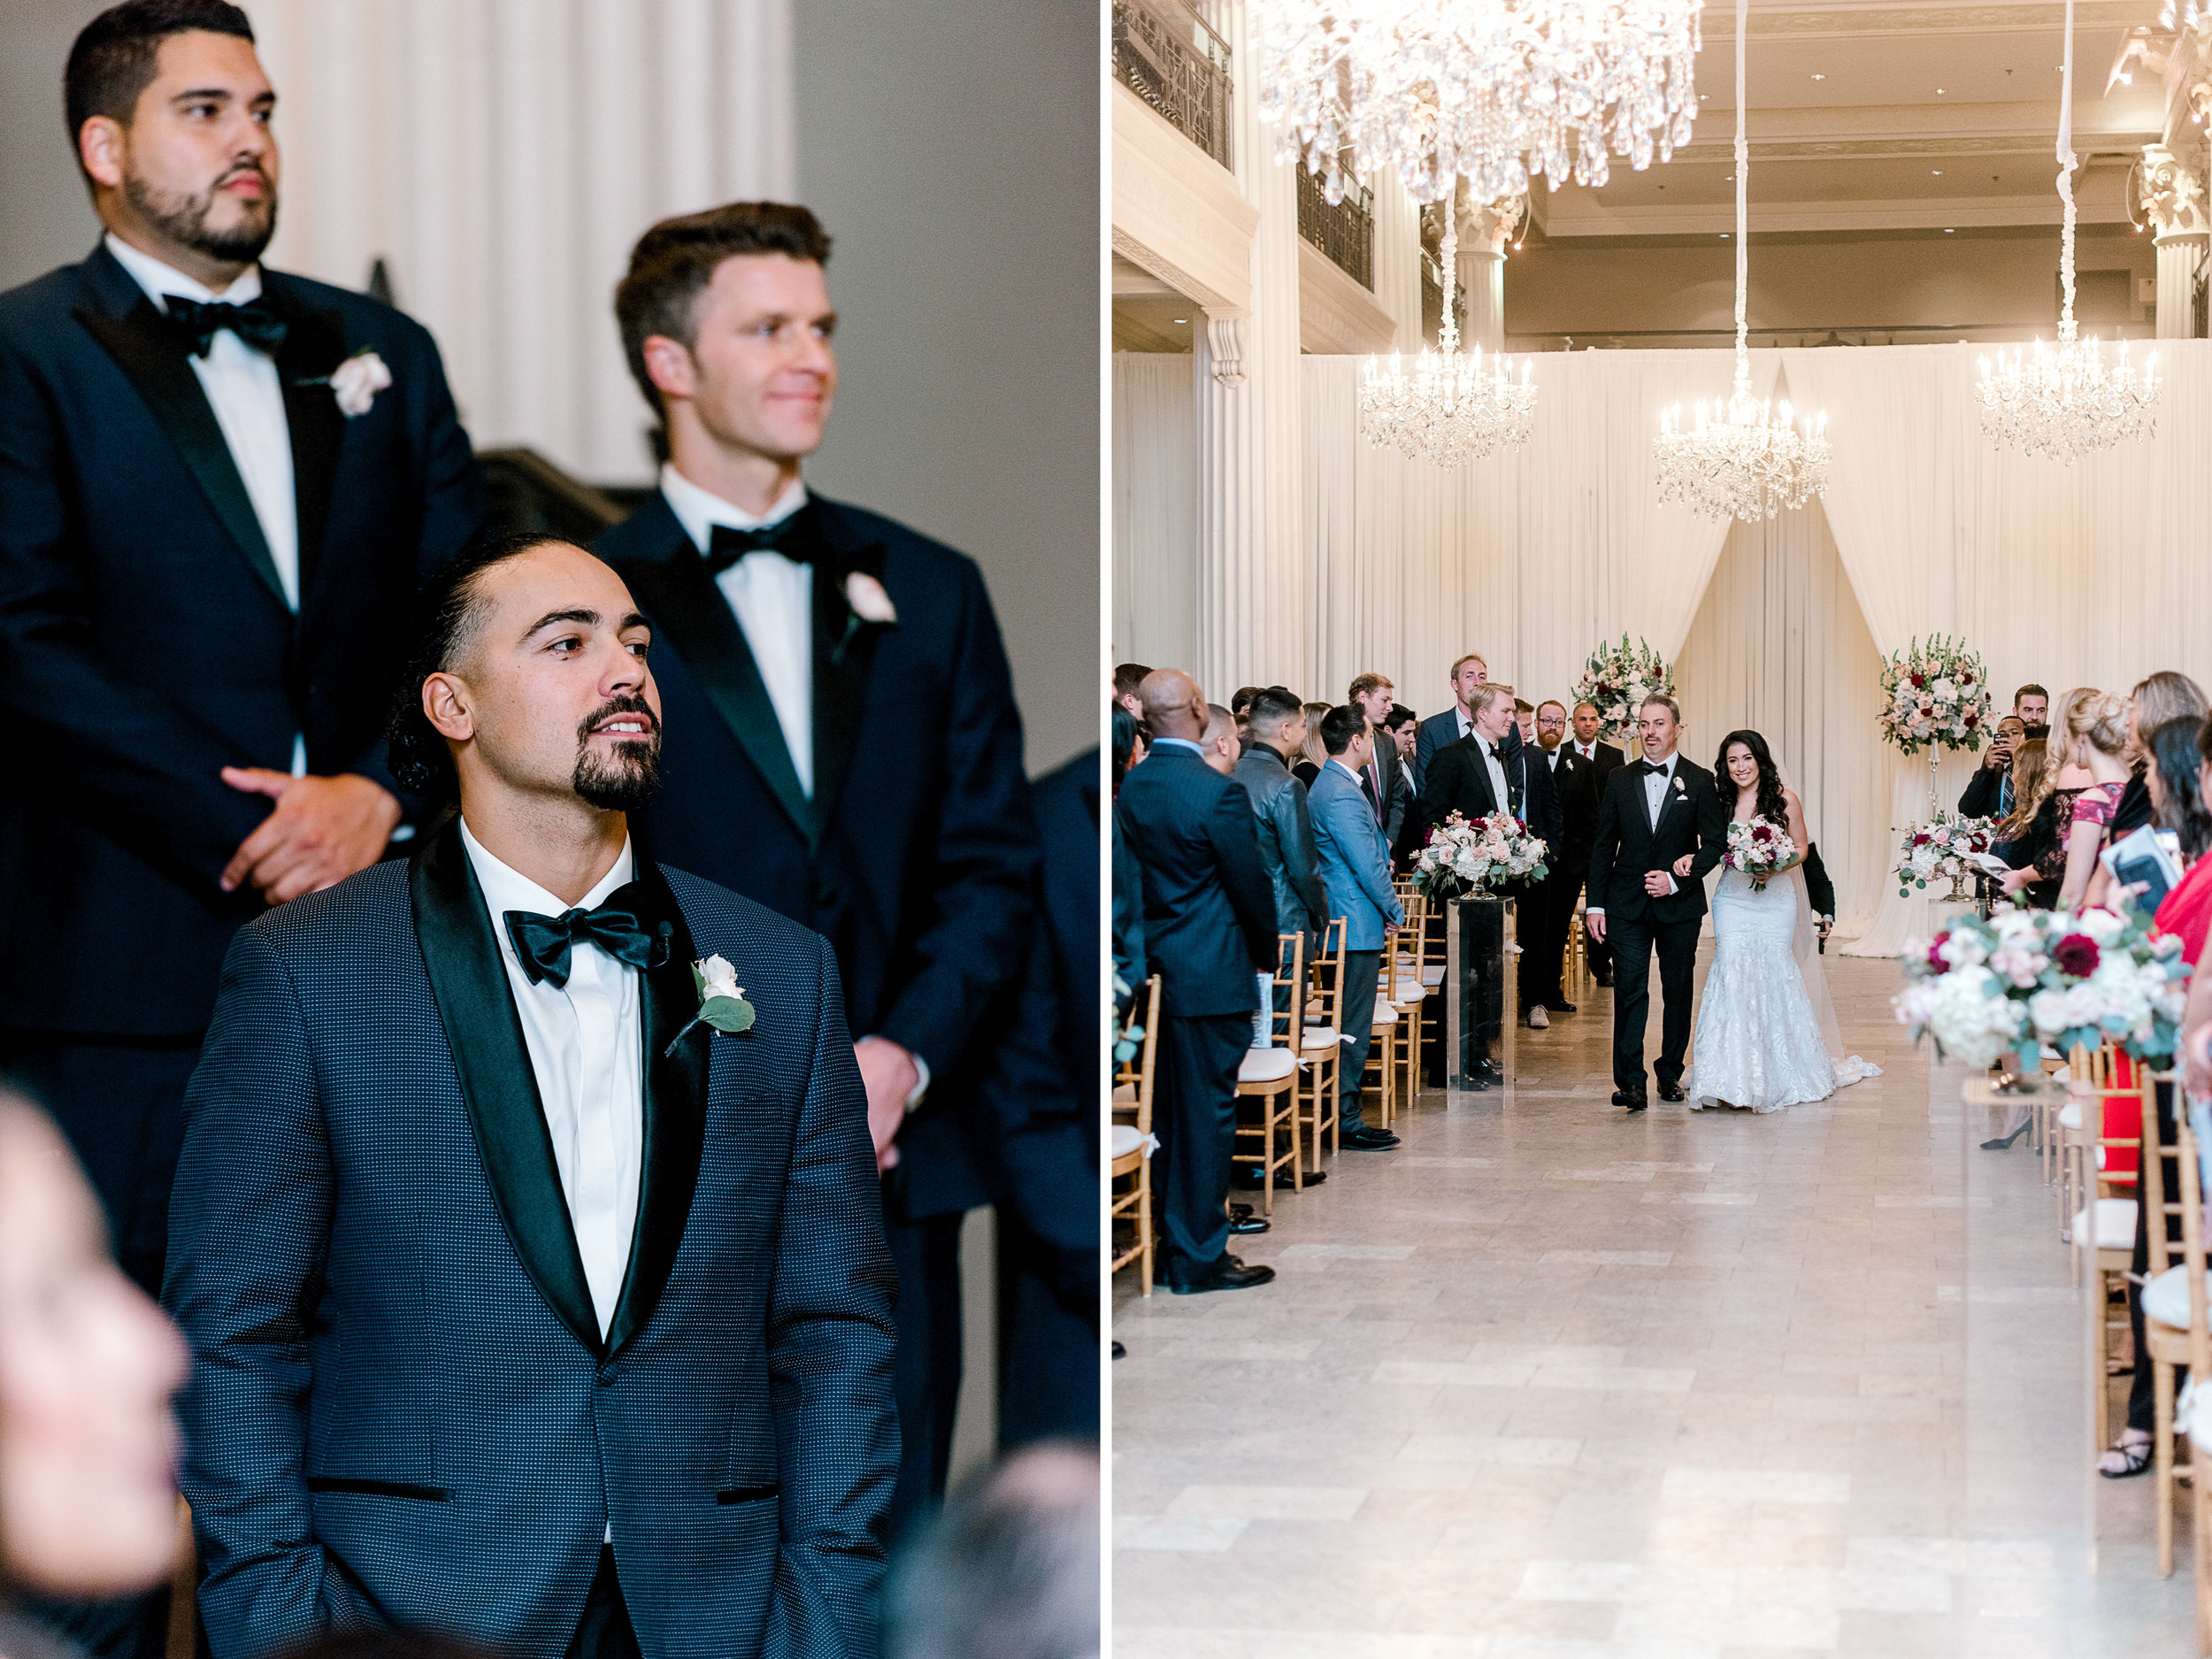 Houston-Wedding-Fine-Art-Film-Photographer-Belle-Events-Belle-of-the-Ball-Anthony-Rendon-Washington-Nationals-The-Corinthian-Style-Me-Pretty-118.jpg